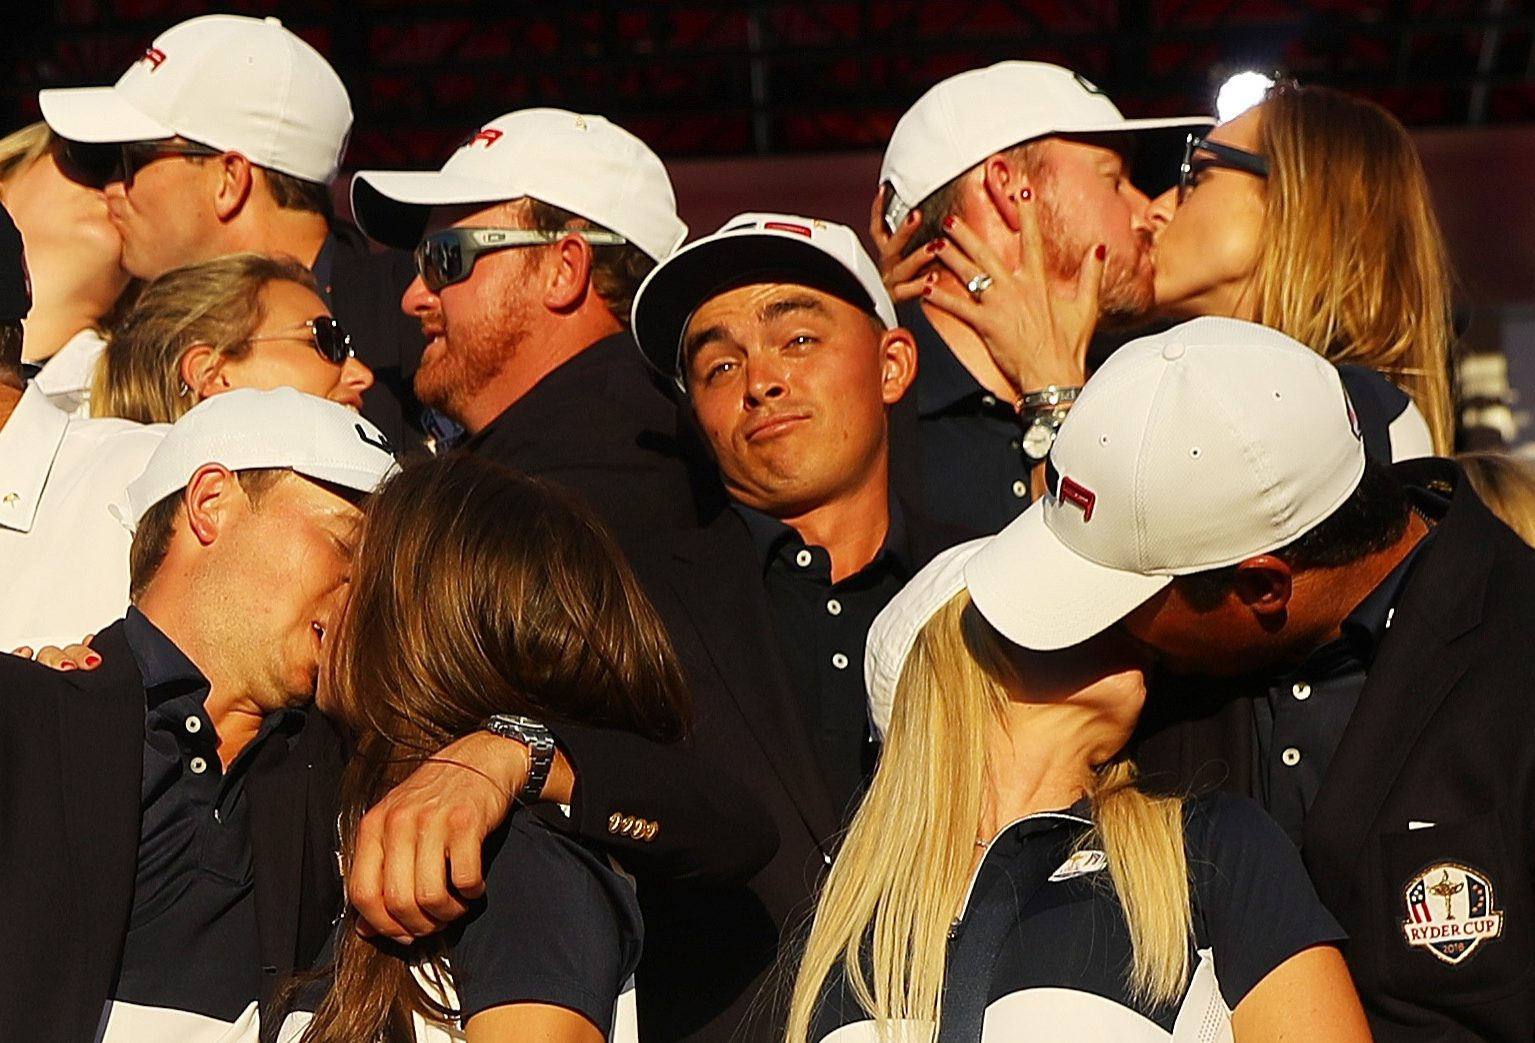 Rickie Fowler, who didn't take a Wag to the Ryder Cup, looks lonely as teammates enjoy a kiss